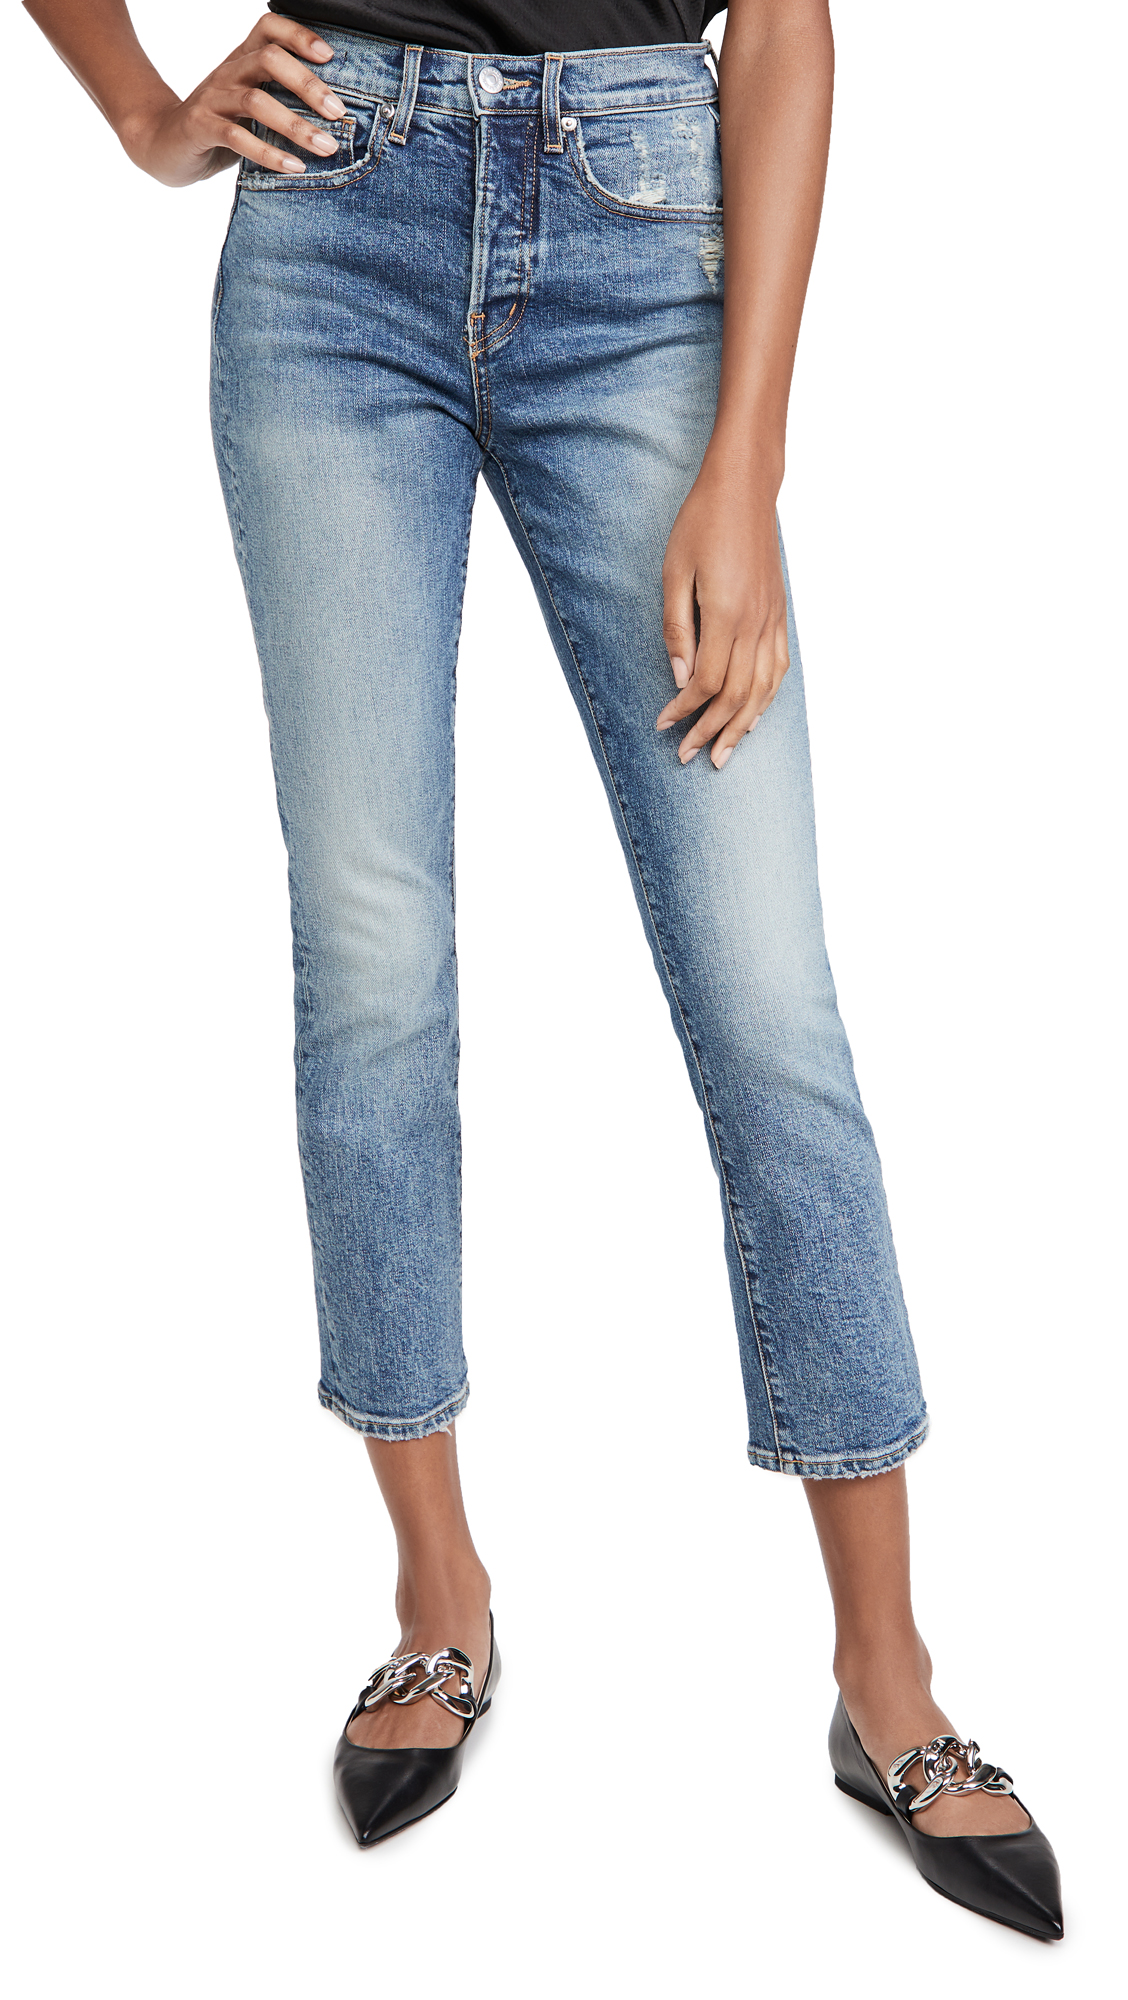 Veronica Beard Jean Ryleigh Straight Leg Jeans